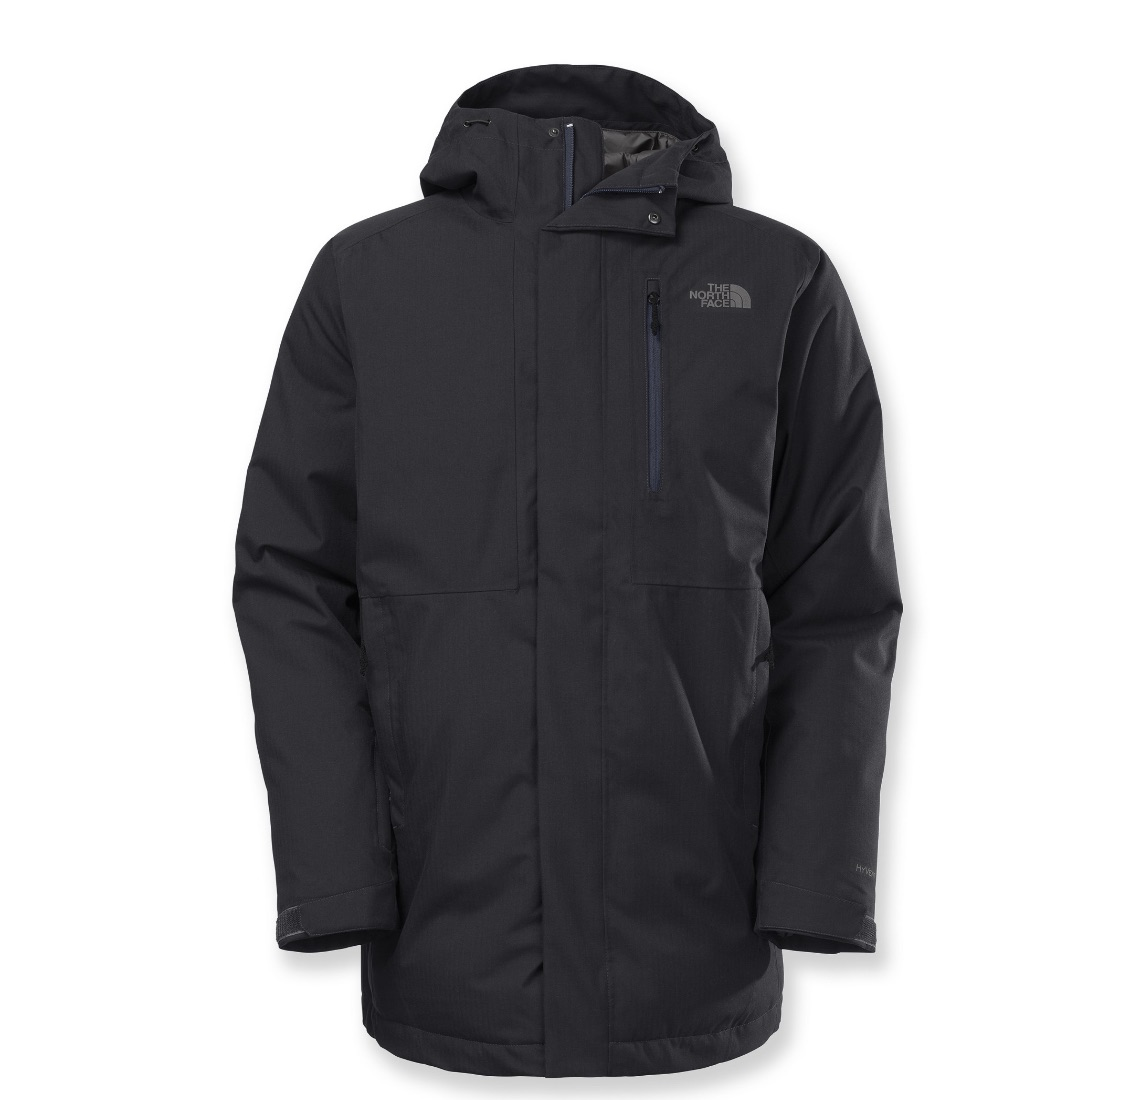 Buy The North Face Venture Jacket - Tall Mens: Shop top fashion brands Jackets at 0zu1.gq FREE DELIVERY and Returns possible on eligible purchases.